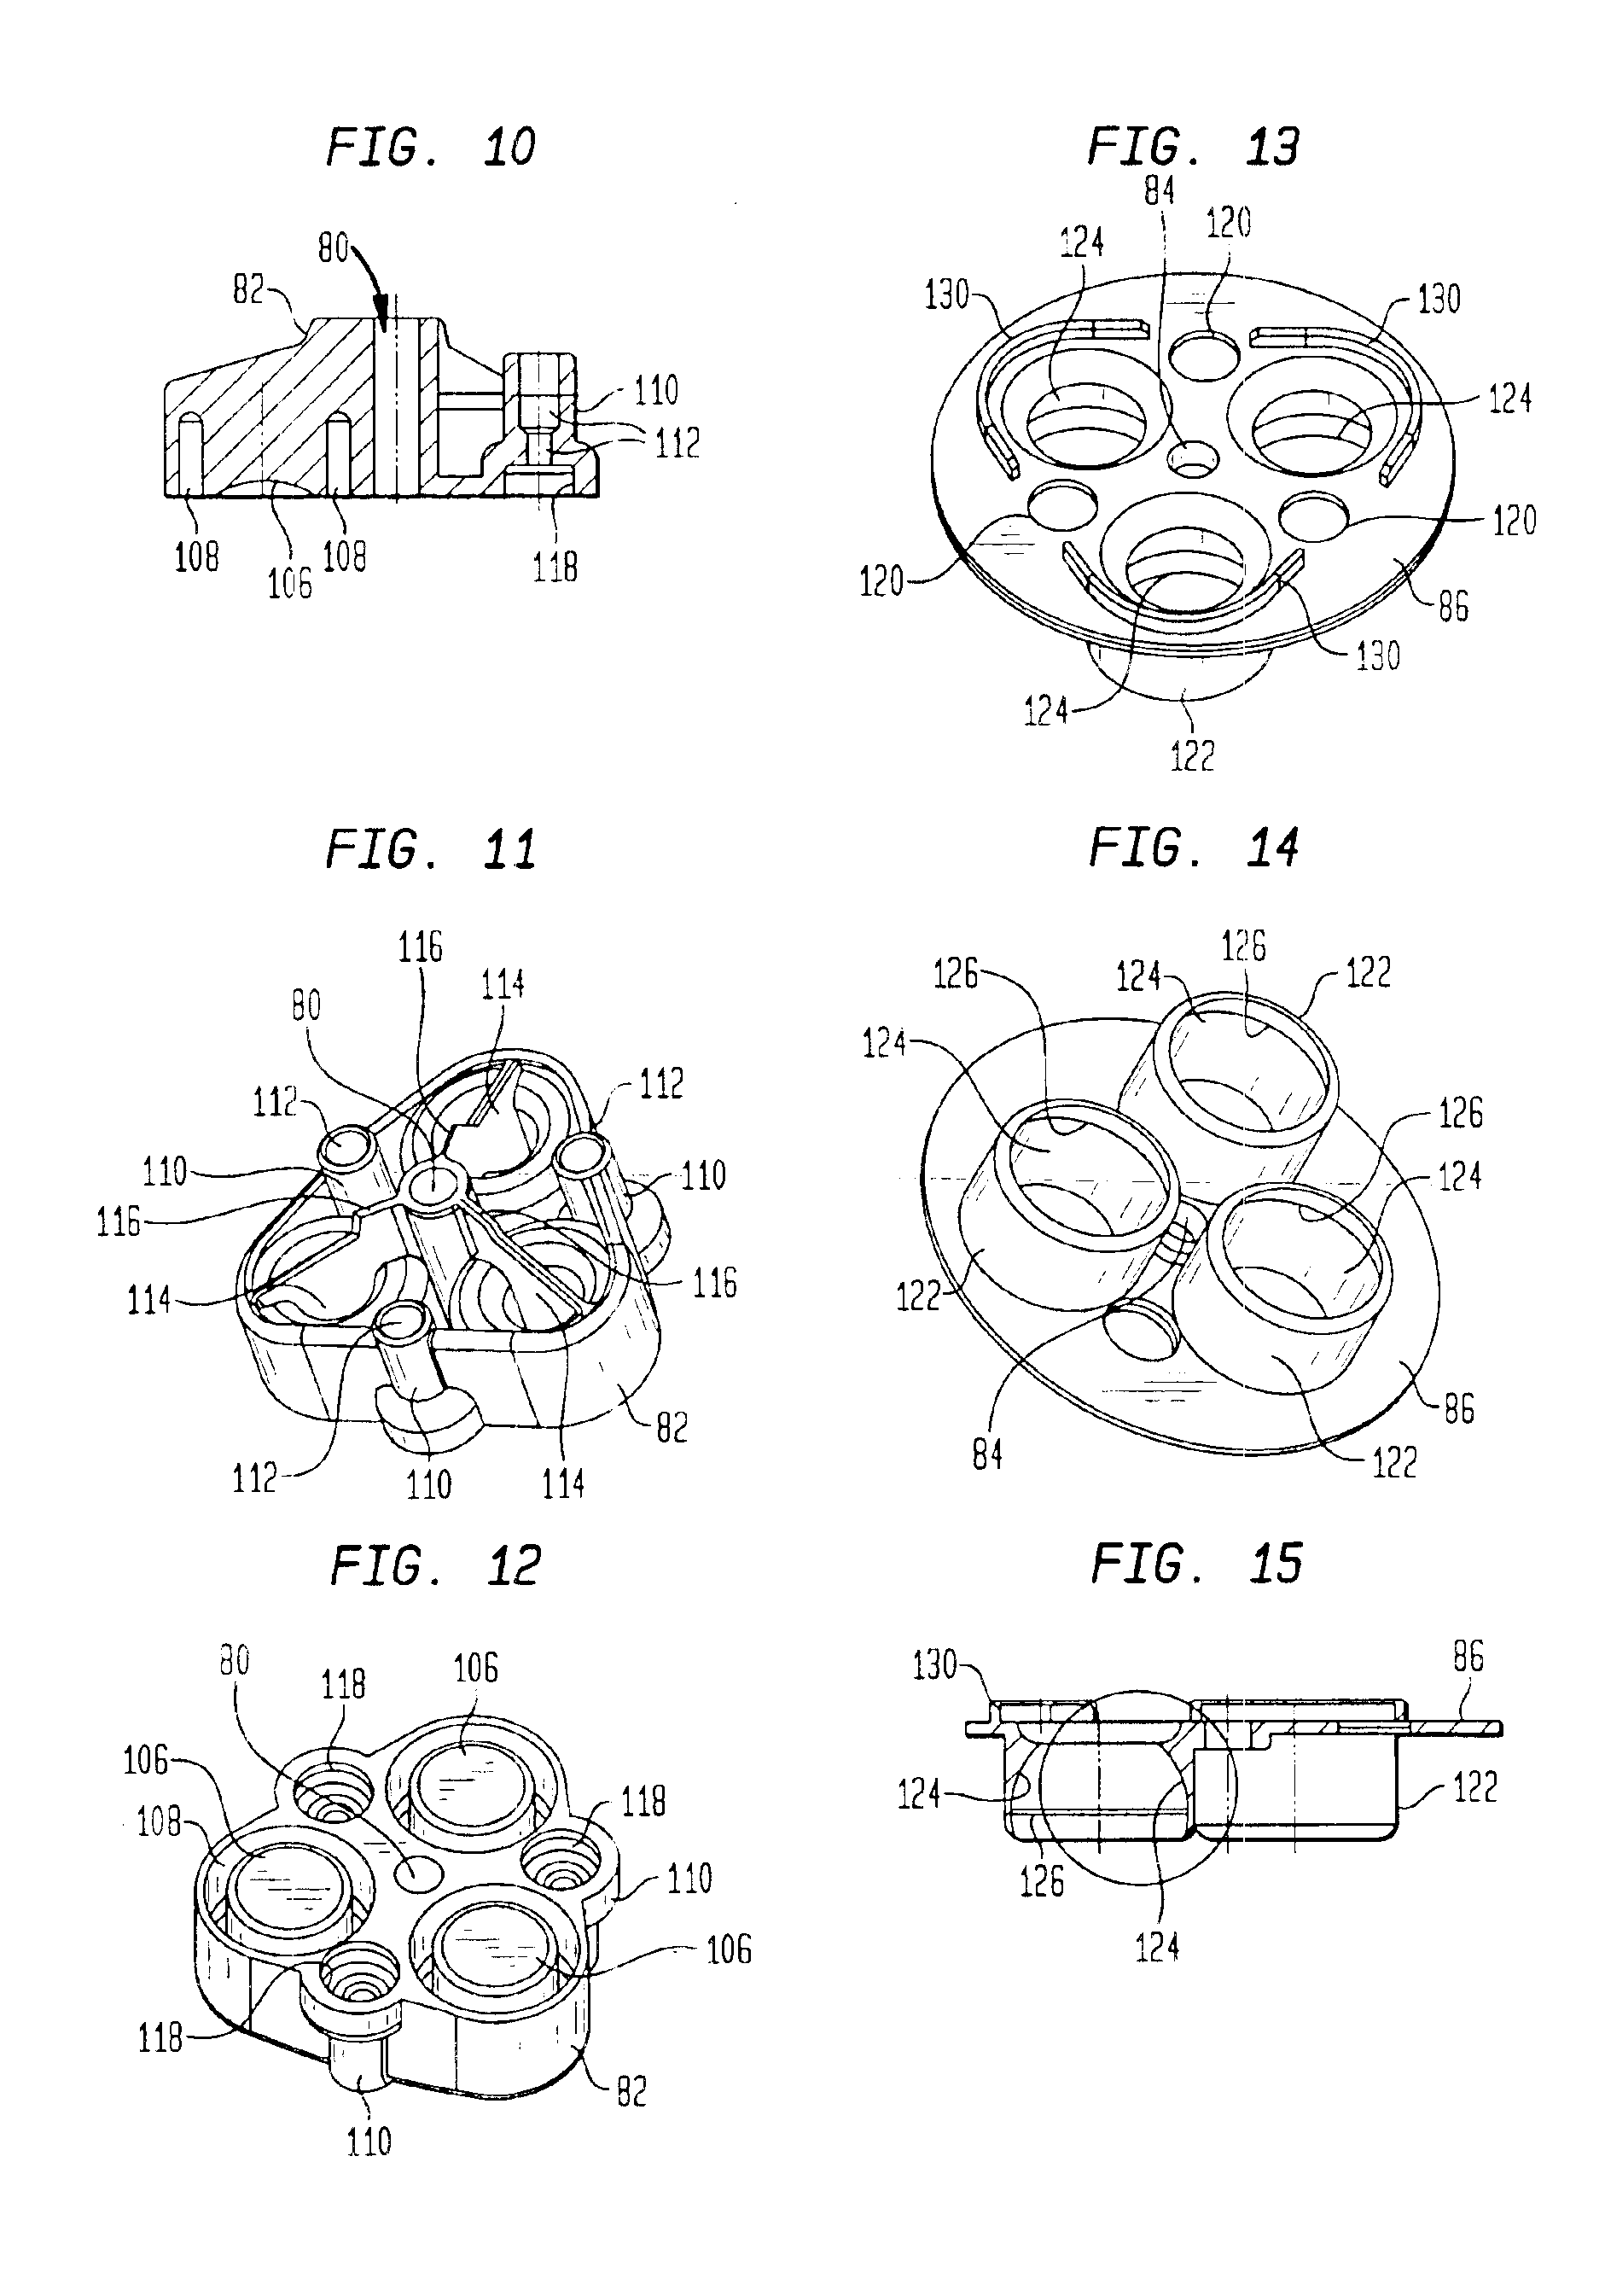 Marvelous Patent Drawing